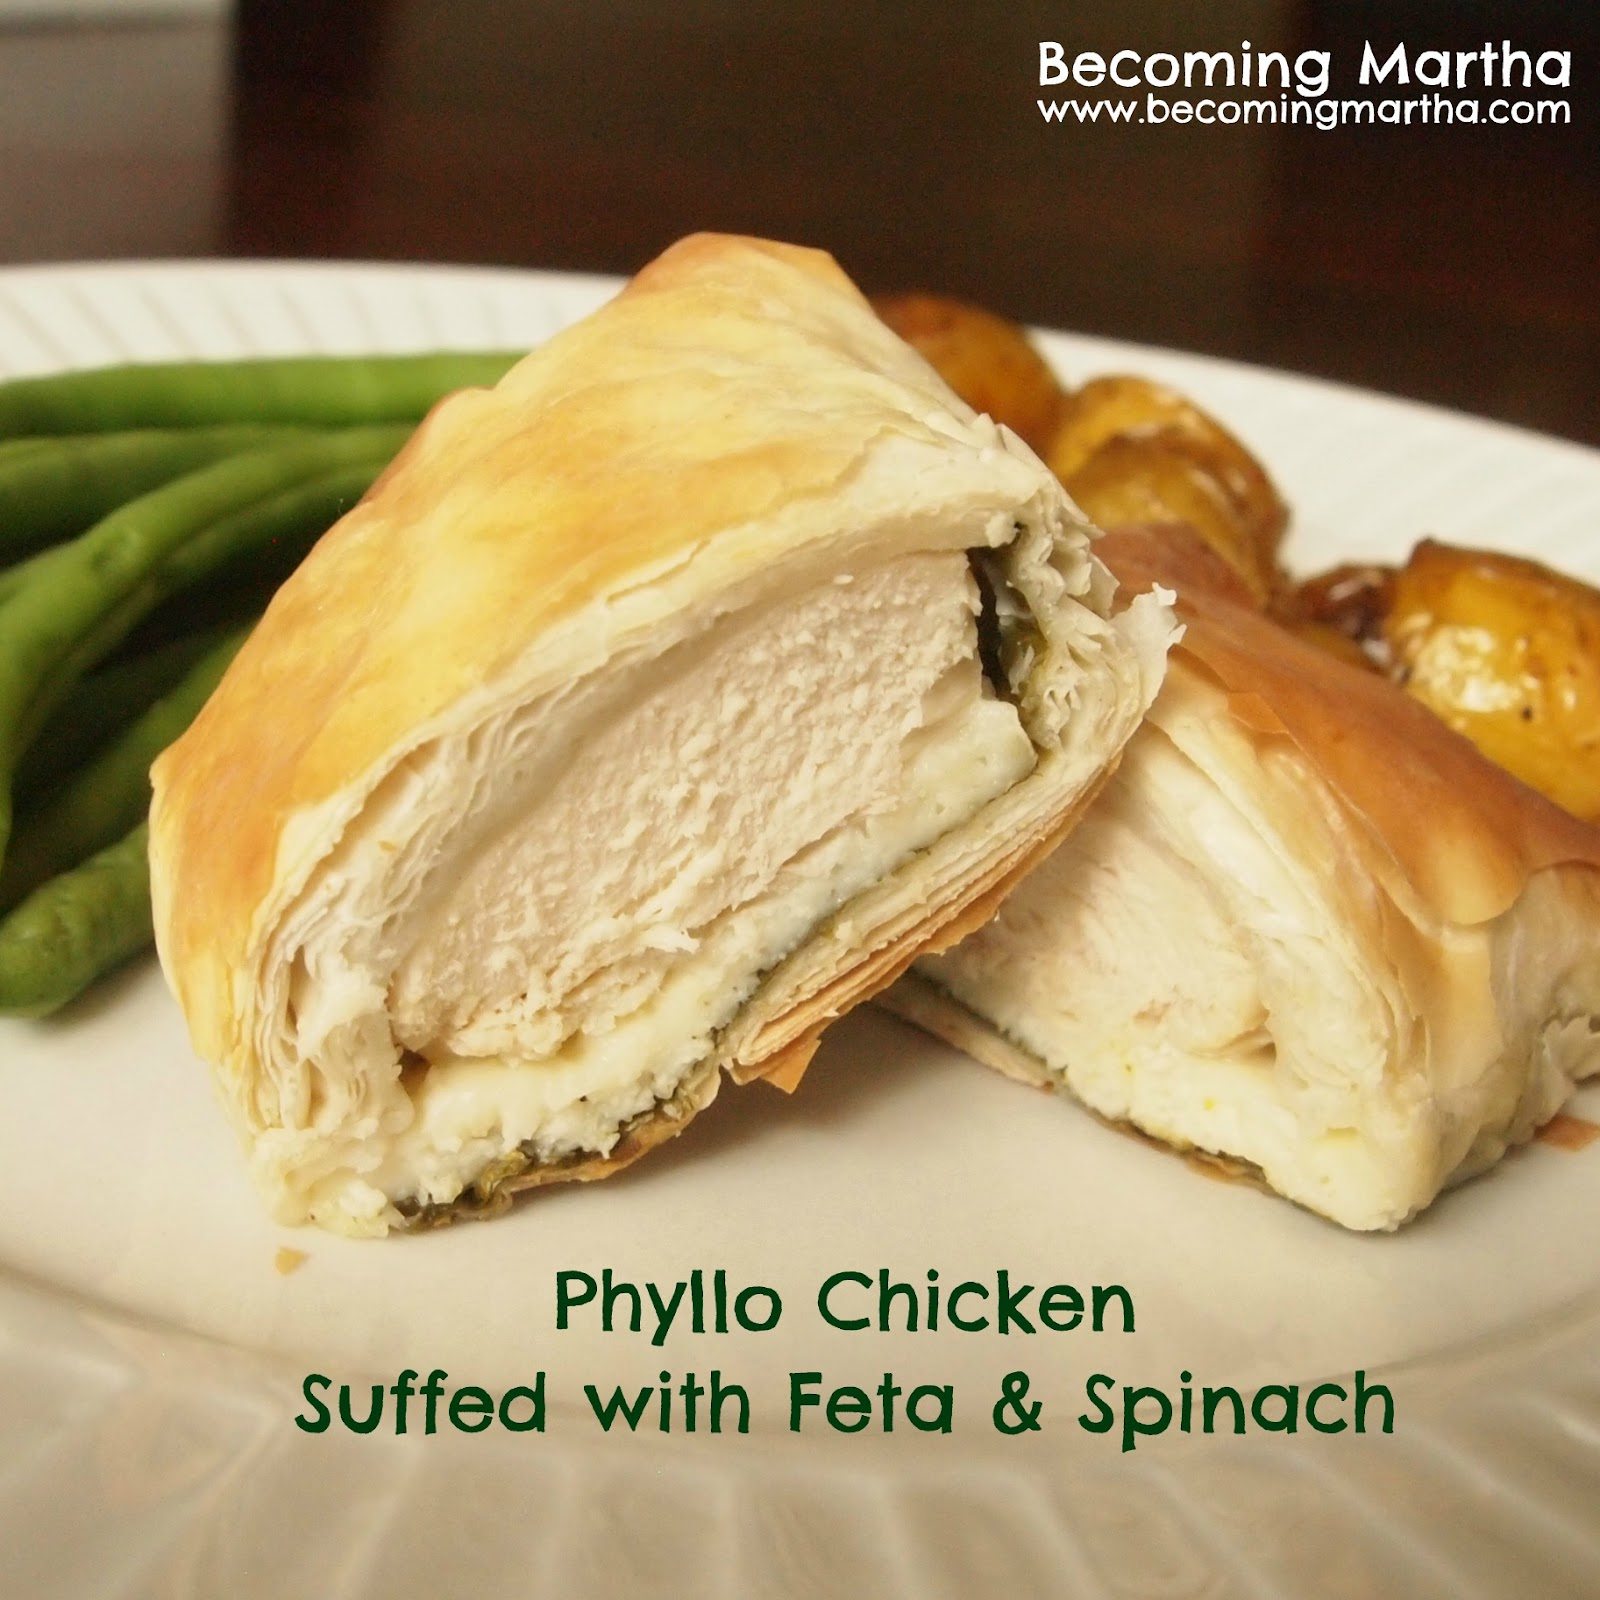 Remove 1 phyllo sheet from stack; fold in half lengthwise. Brush lightly with oil. Place 2 heaping tablespoons of the chicken mixture at the bottom of the folded phyllo, about 1 inch from the bottom. Fold bottom of phyllo over filling, fold in each side, roll wrap to the end of the phyllo sheet. Repeat with remaining phyllo sheets and chicken mixture/5(28).